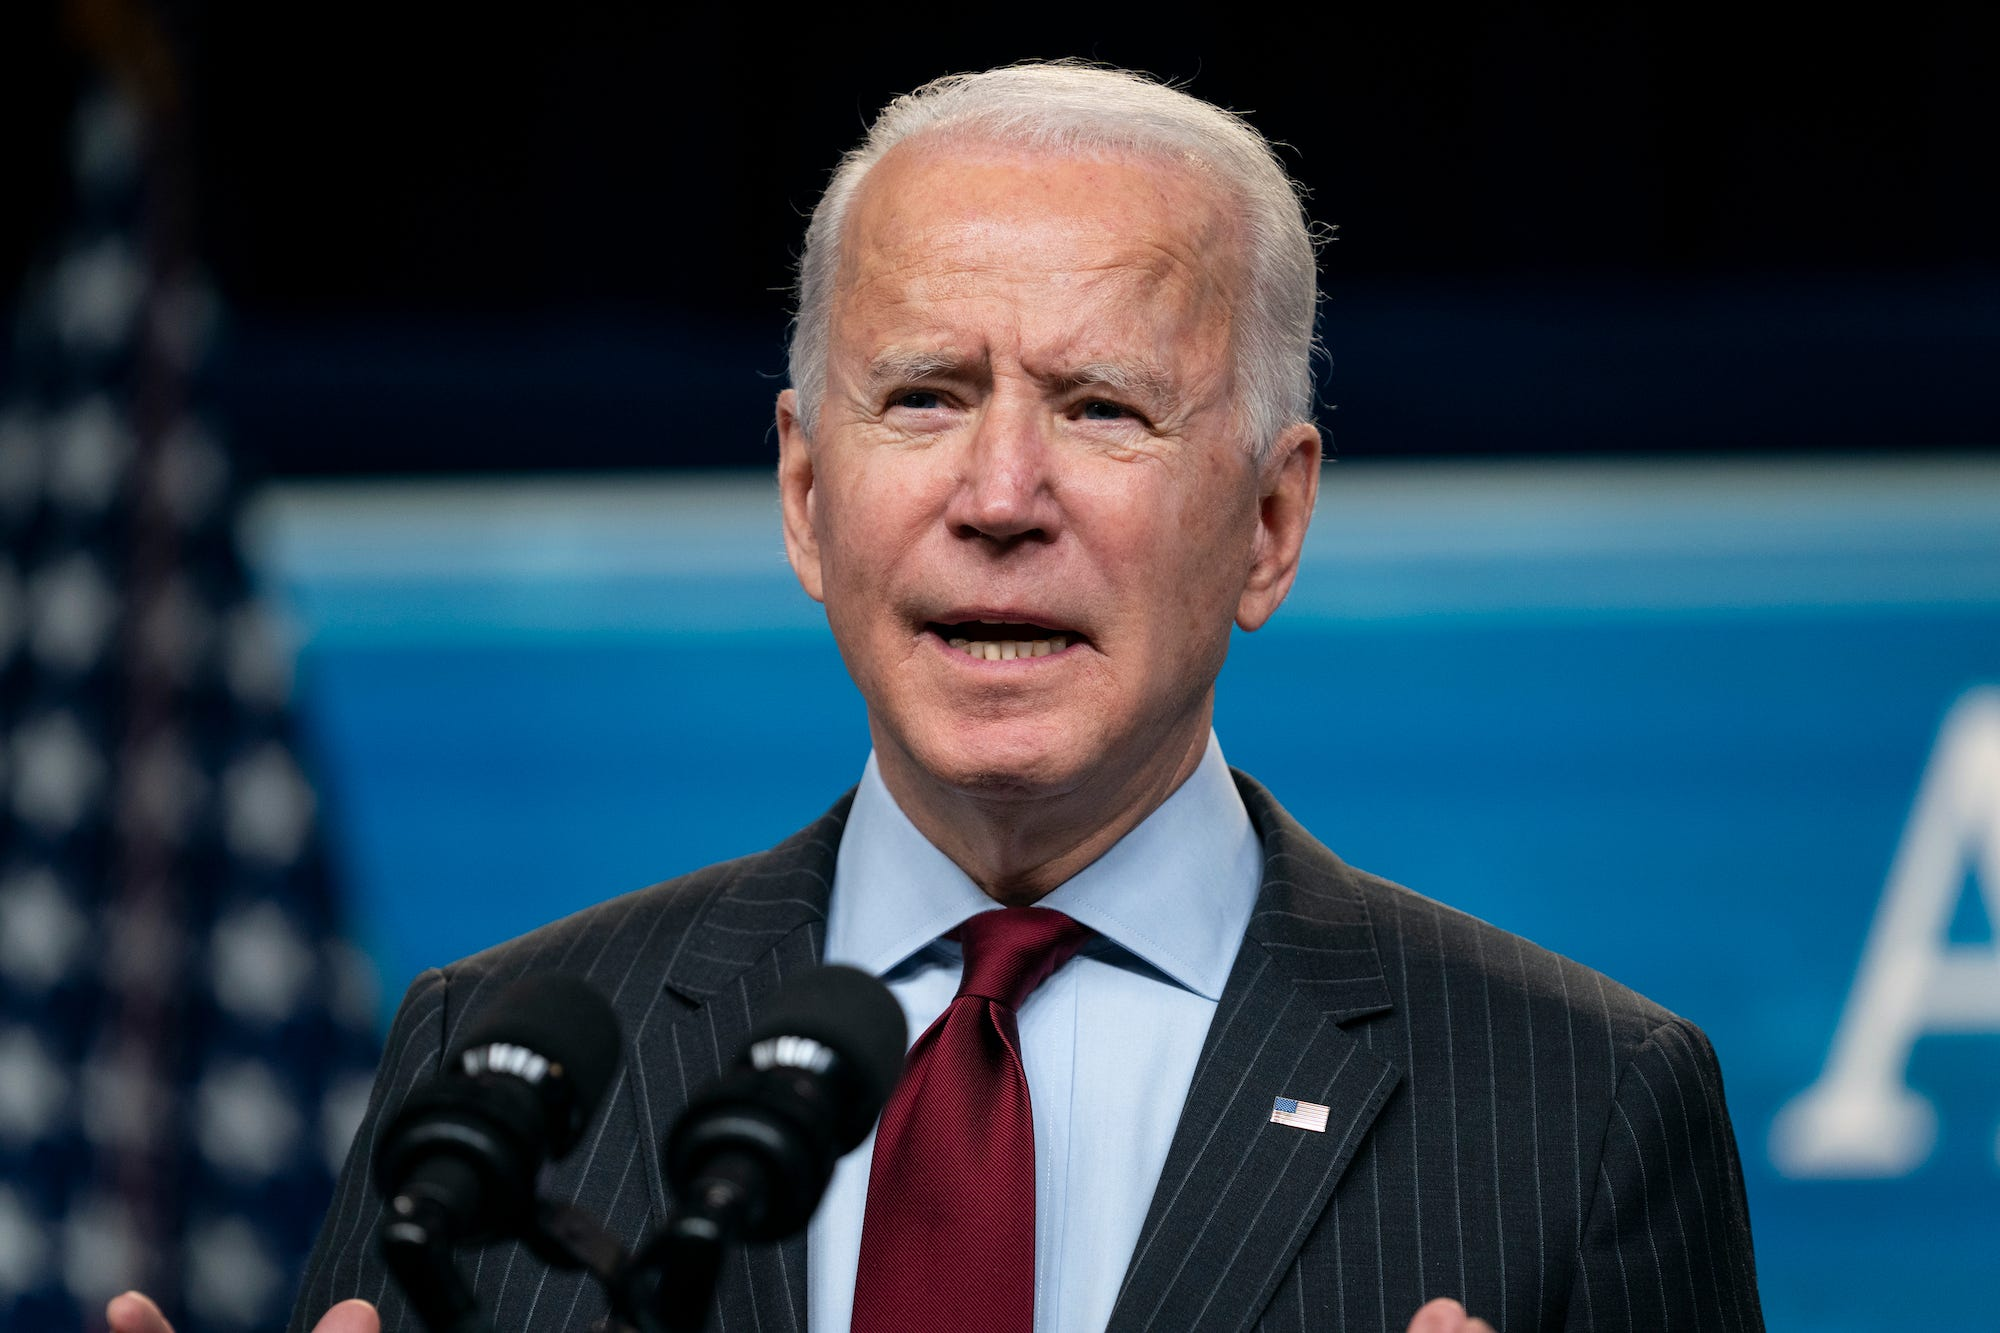 Biden to mourn 500,000 dead while balancing grief and hope 2